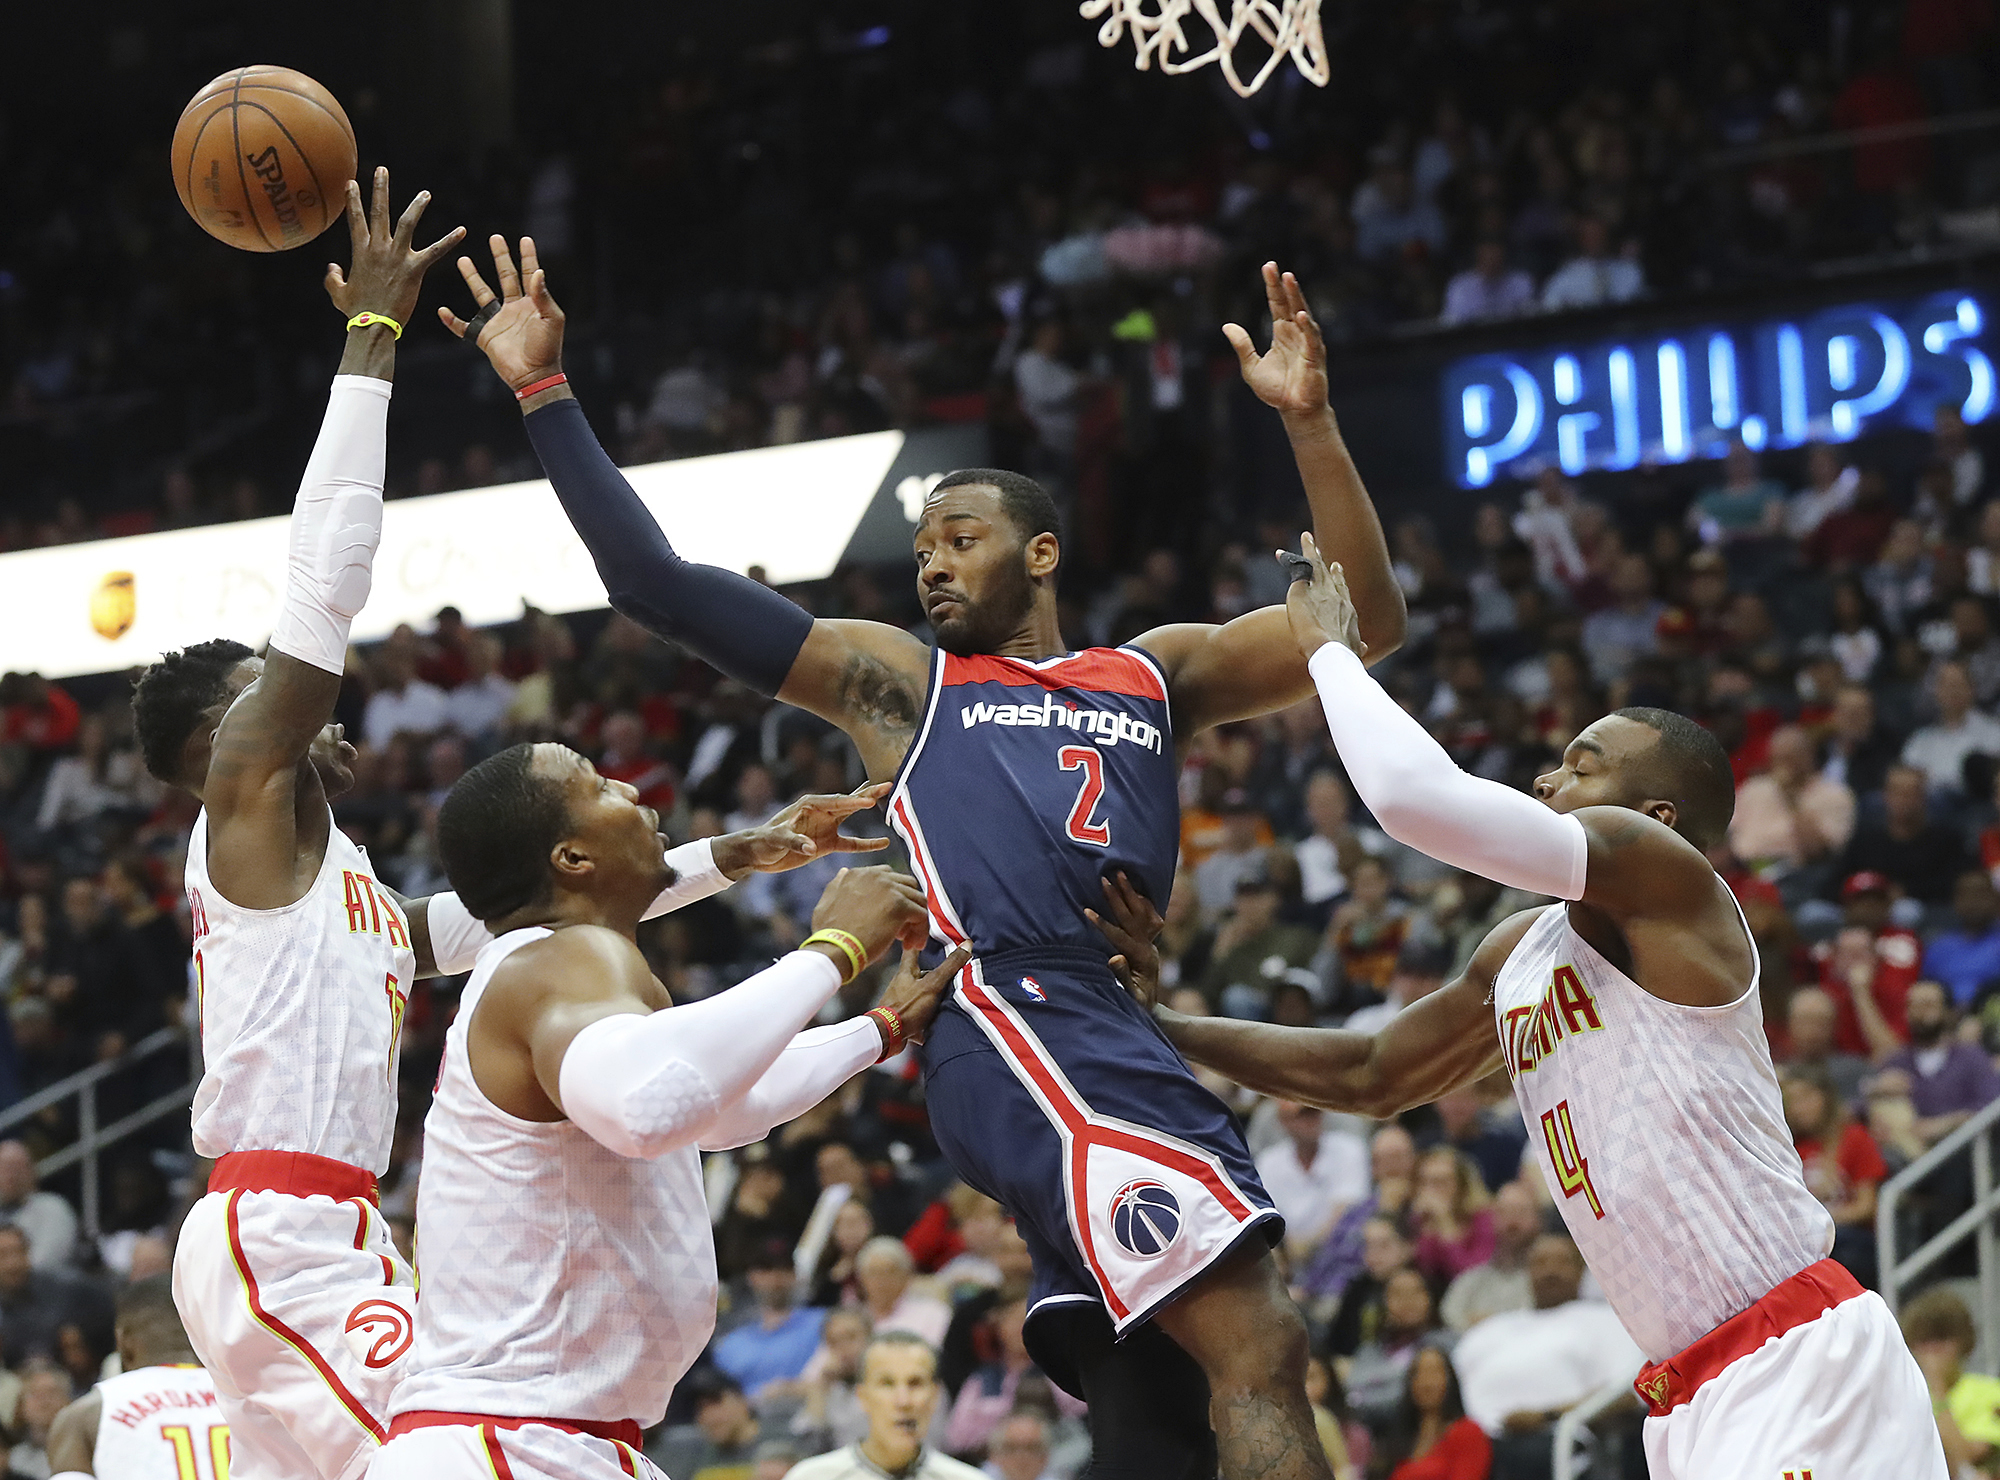 Wizards_hawks_basketball_86923.jpg-e077a